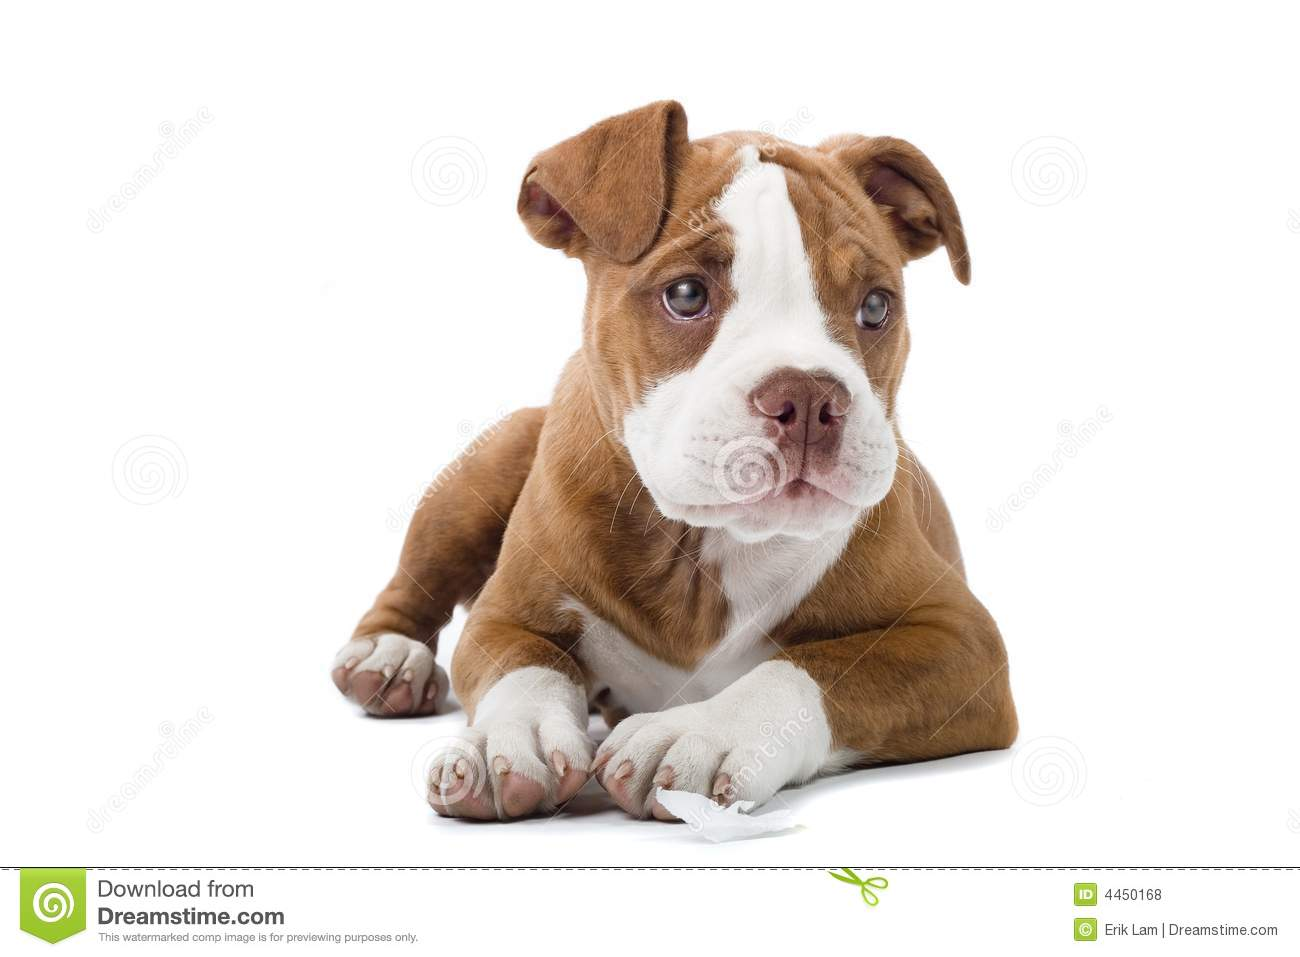 renasance bulldog renaissance bulldog stock photo image of puppie domestic 1140